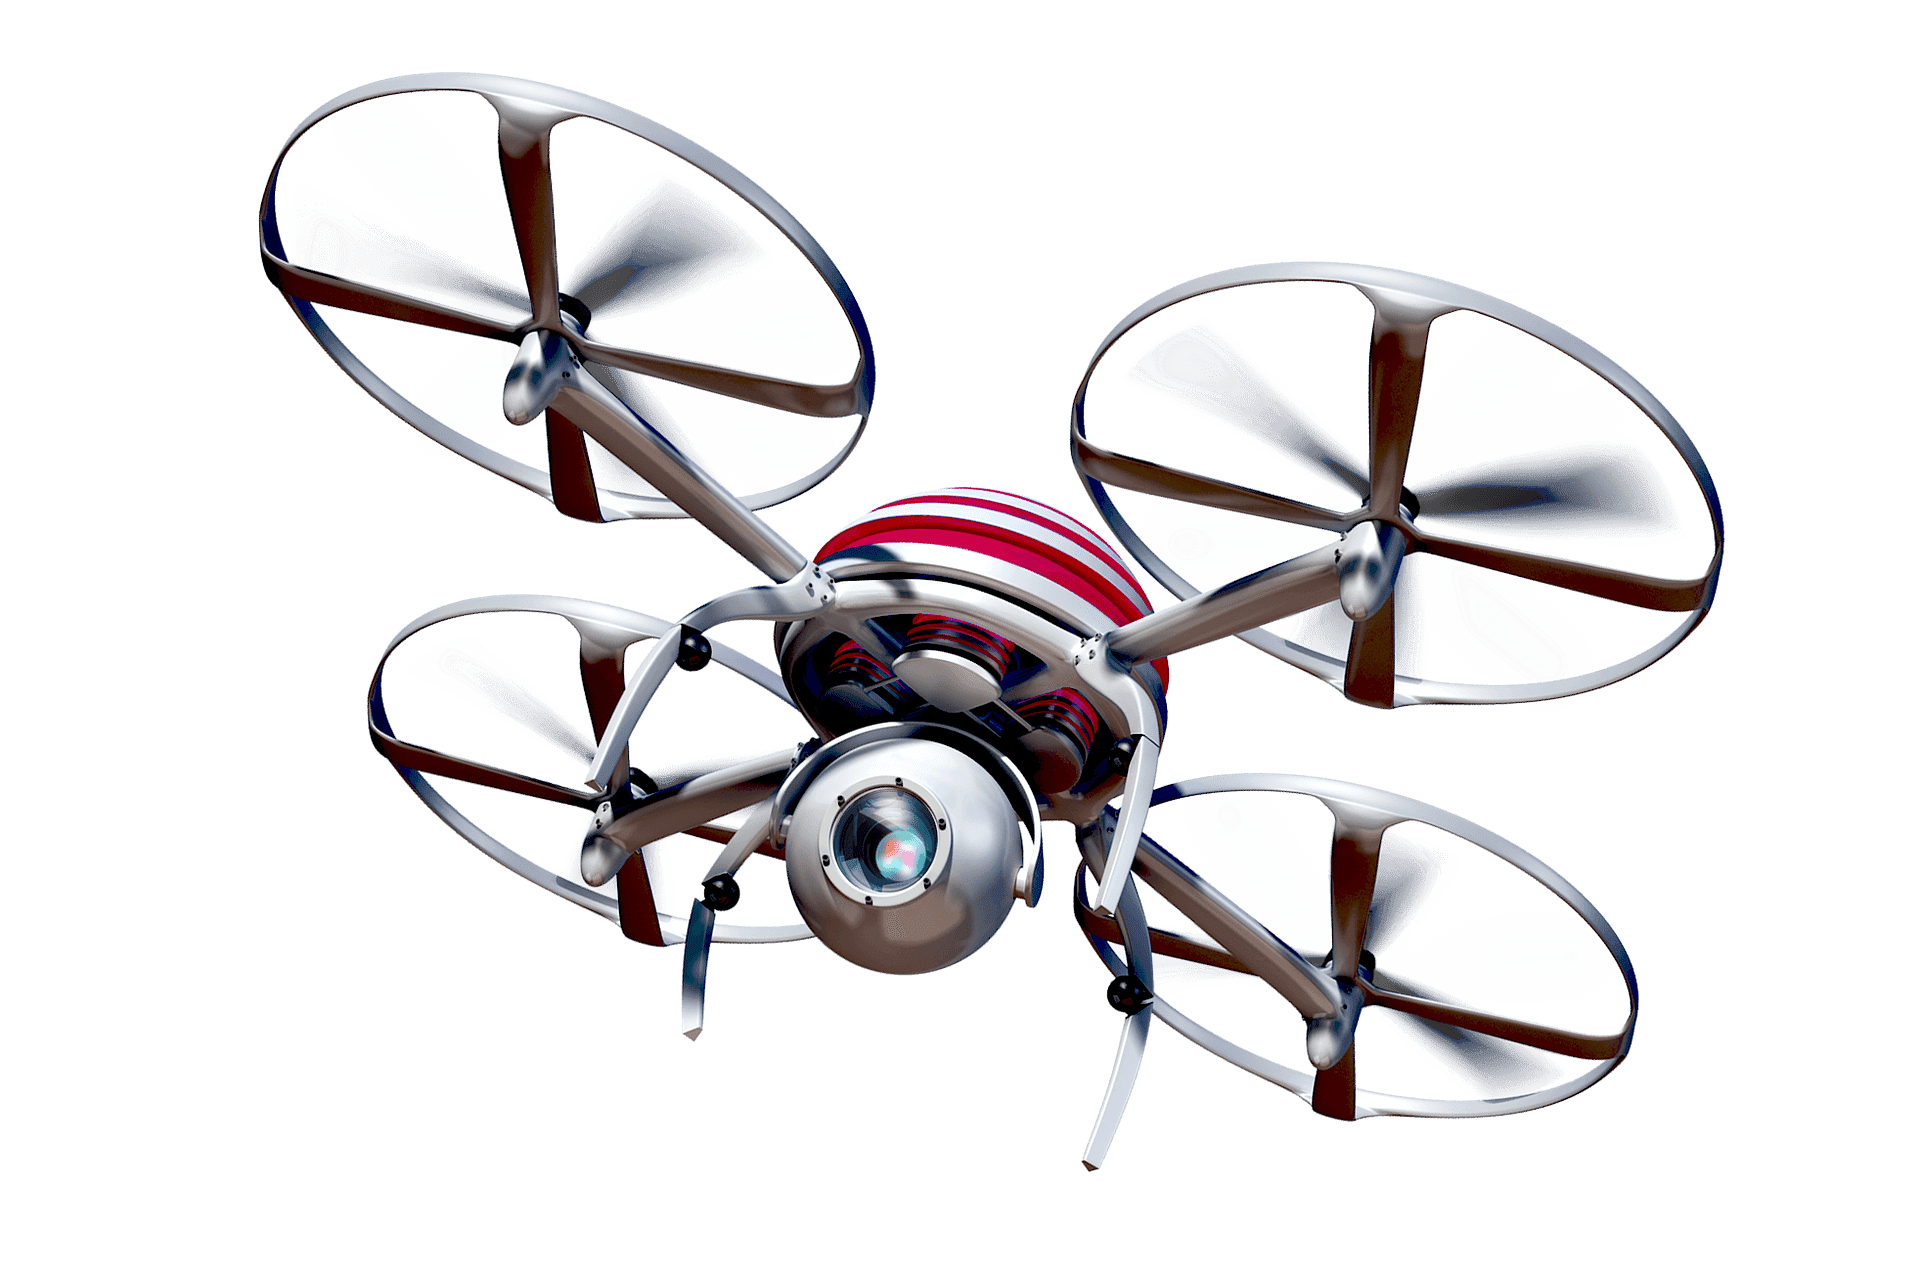 content/en-au/images/repository/isc/2020/a-spy-drone-with-large-camera-lens.png